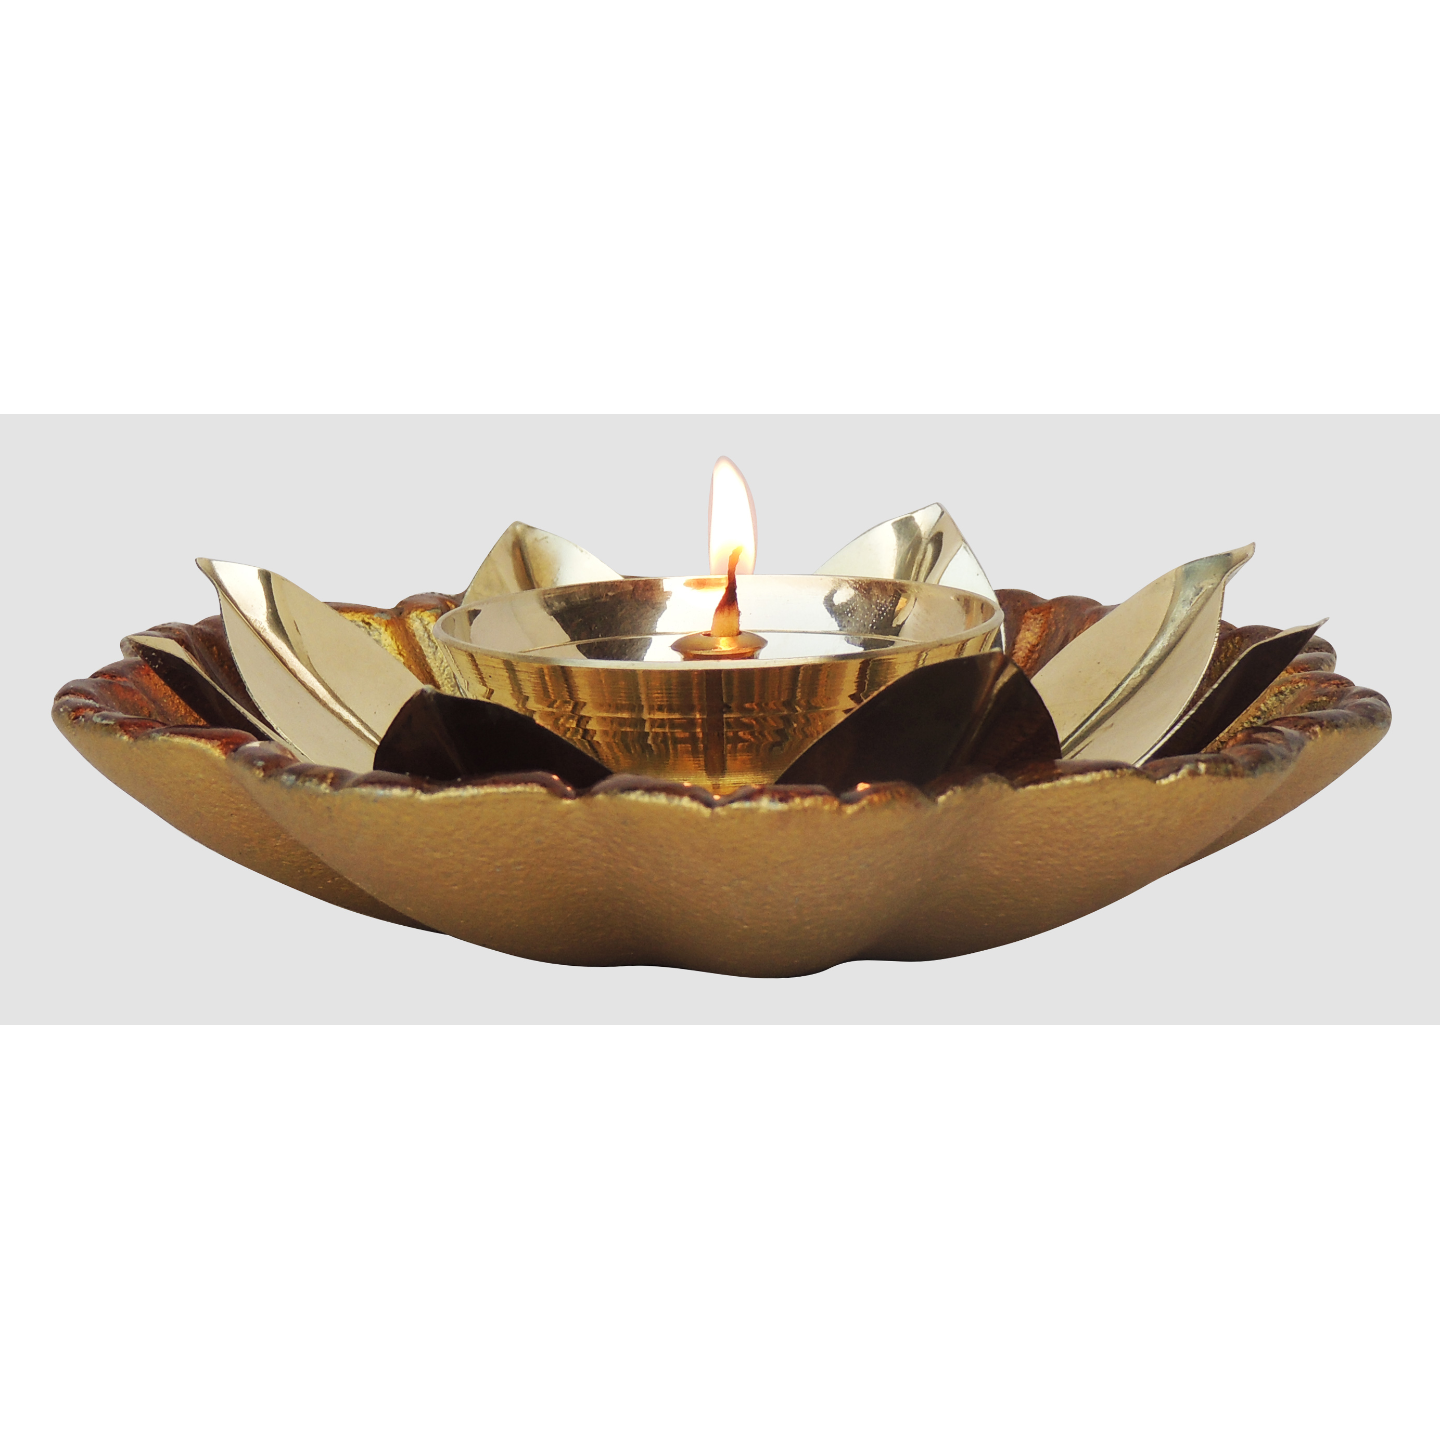 Brass And Aluminium Diya Deepak - 5.6 inch (Z133 C)